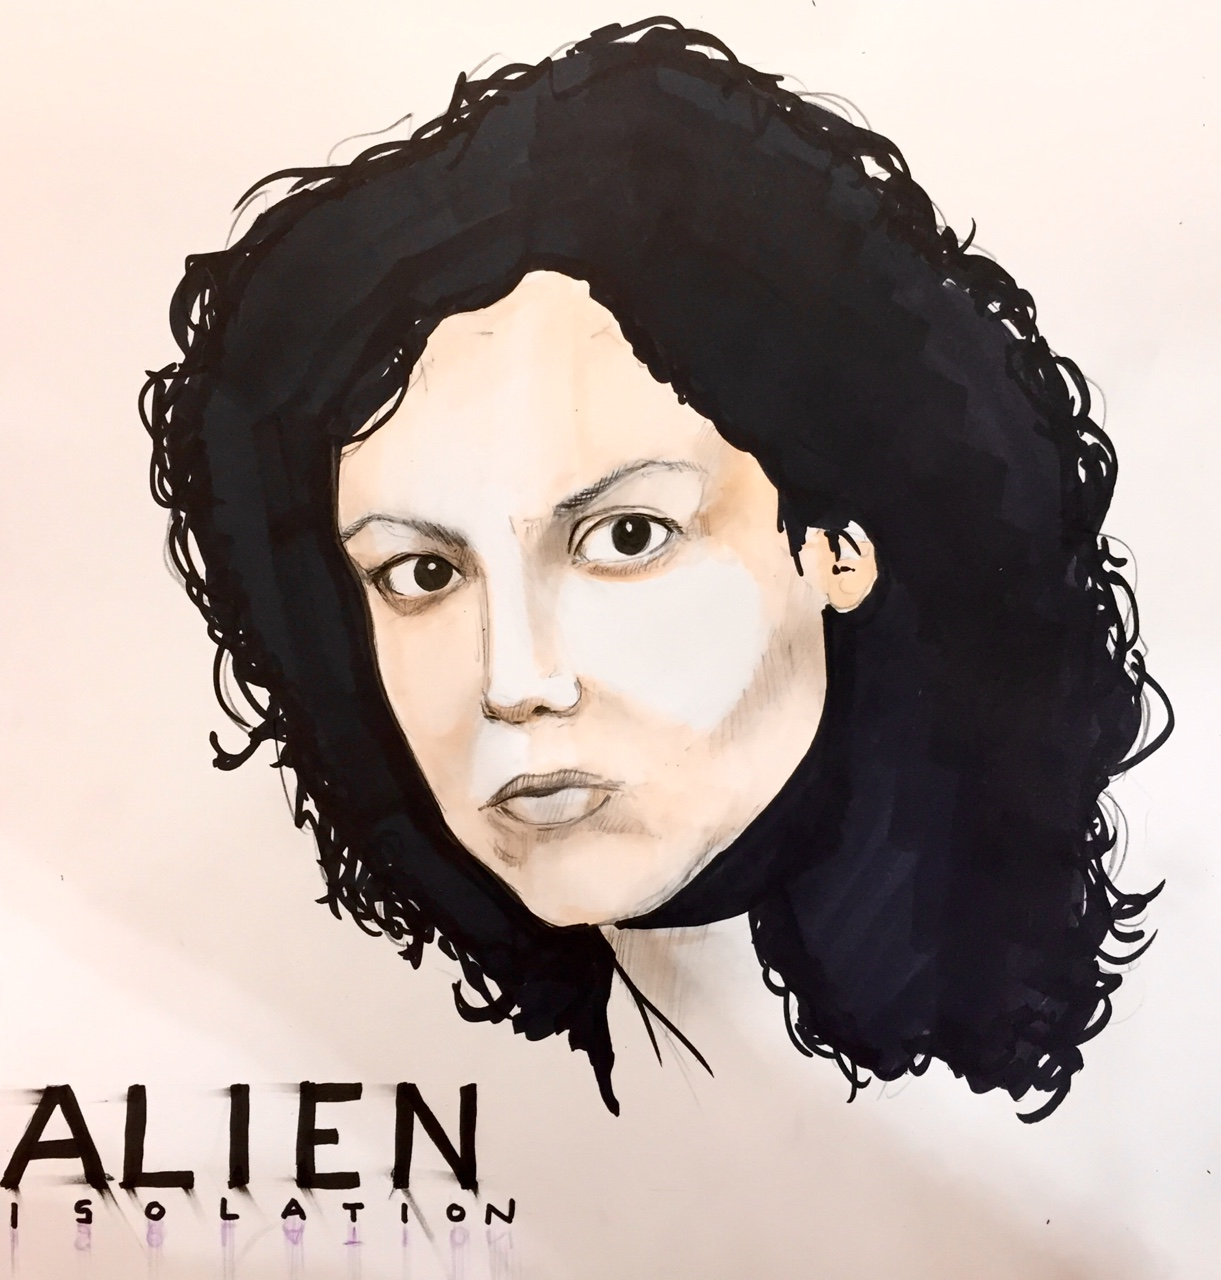 Ellen Ripley. In honour of Alien Isolation. Design marker and coloured pencil. It's a bit rushed cause I was busy at work.